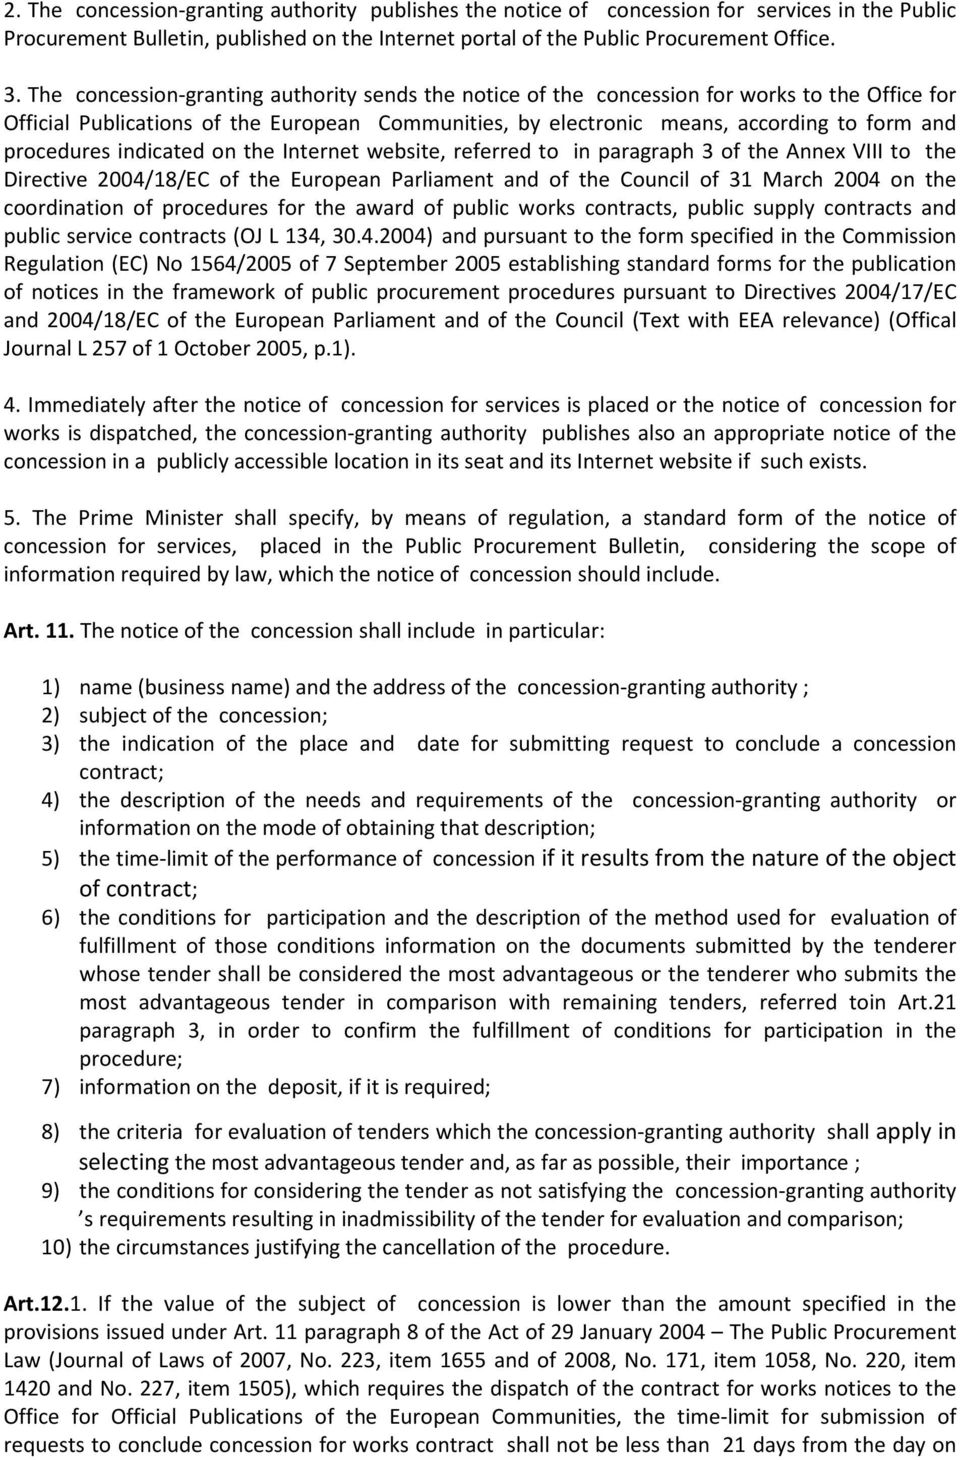 procedures indicated on the Internet website, referred to in paragraph 3 of the Annex VIII to the Directive 2004/18/EC of the European Parliament and of the Council of 31 March 2004 on the